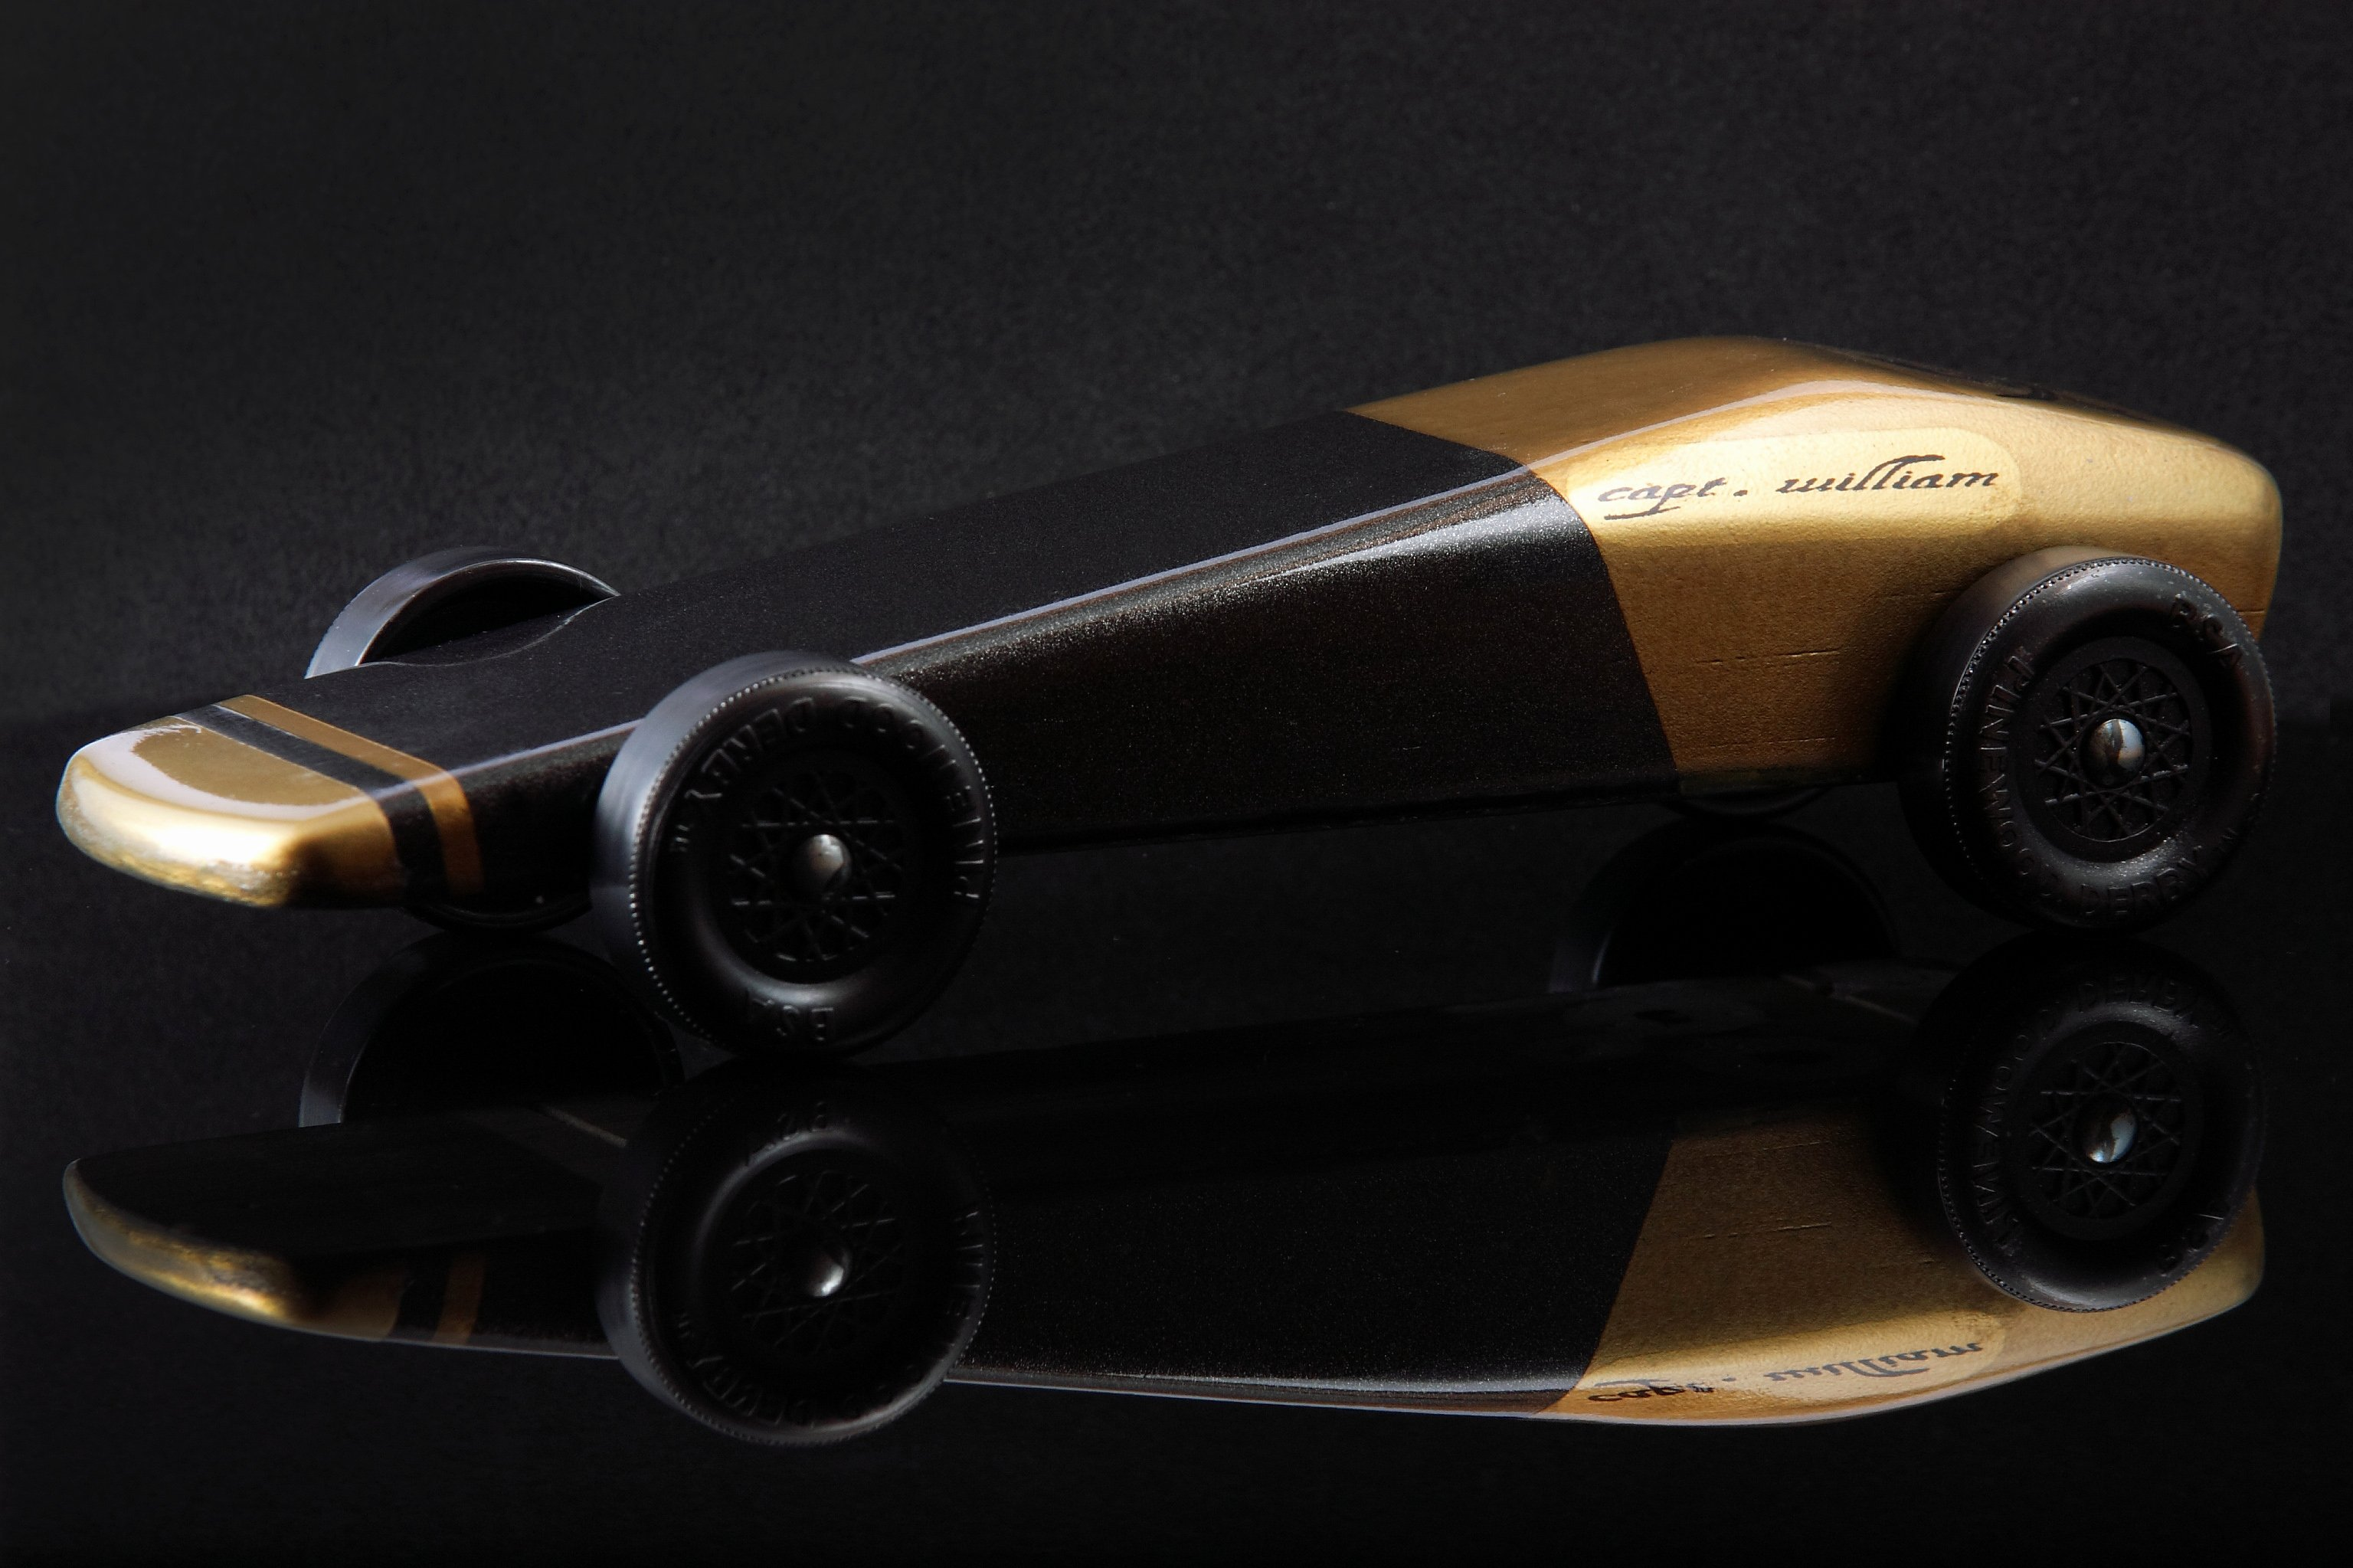 Cool Pinewood Derby Cars Inspirational Pinewood Derby Car – Boys Life Magazine